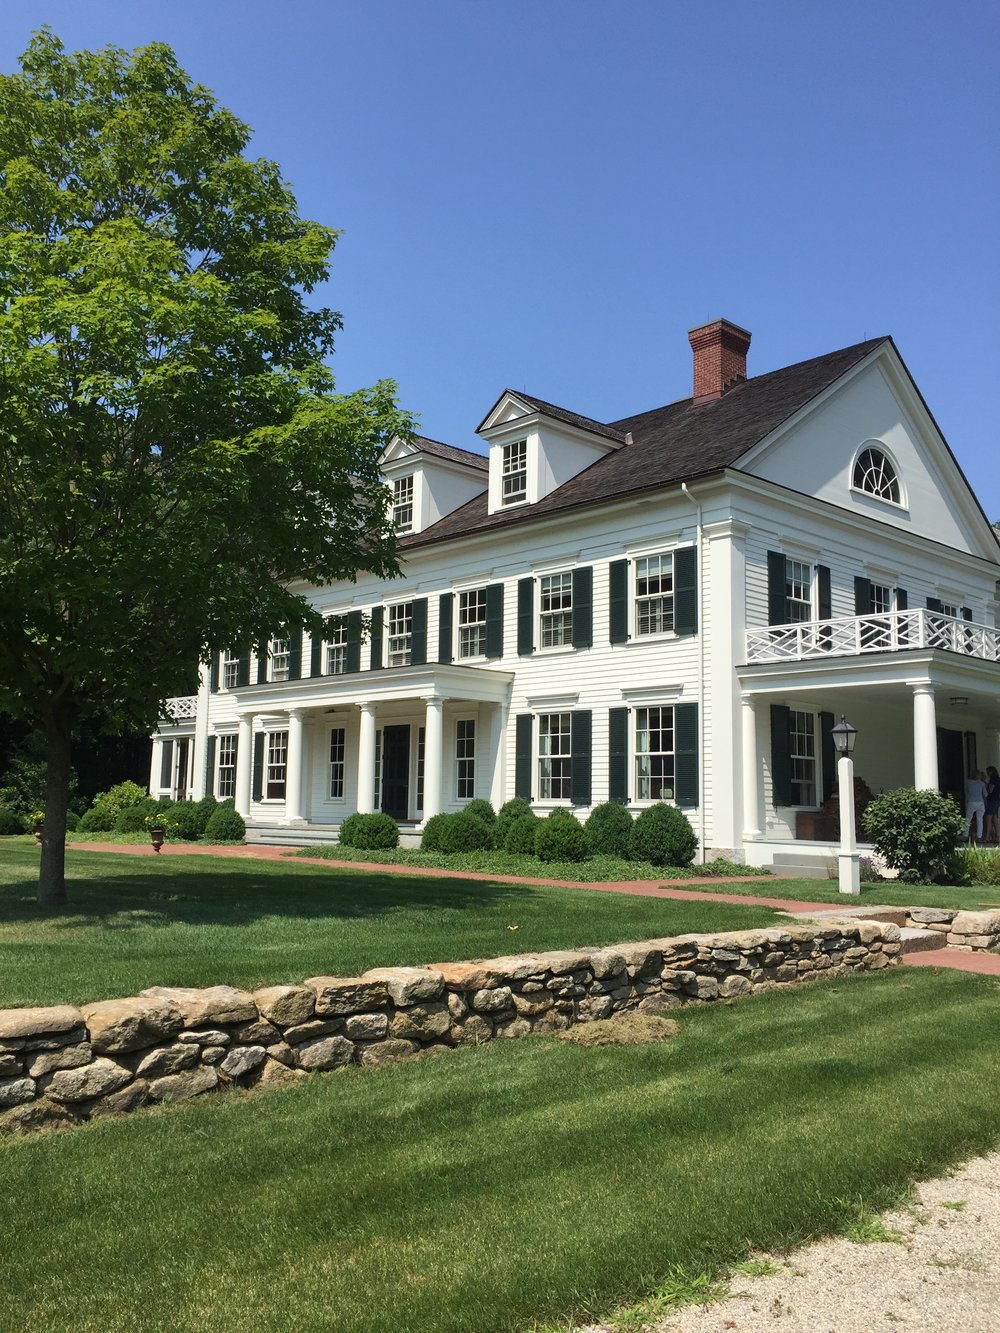 Woodstone, a beautiful new home in Concord, MA Photo: Linda Davis